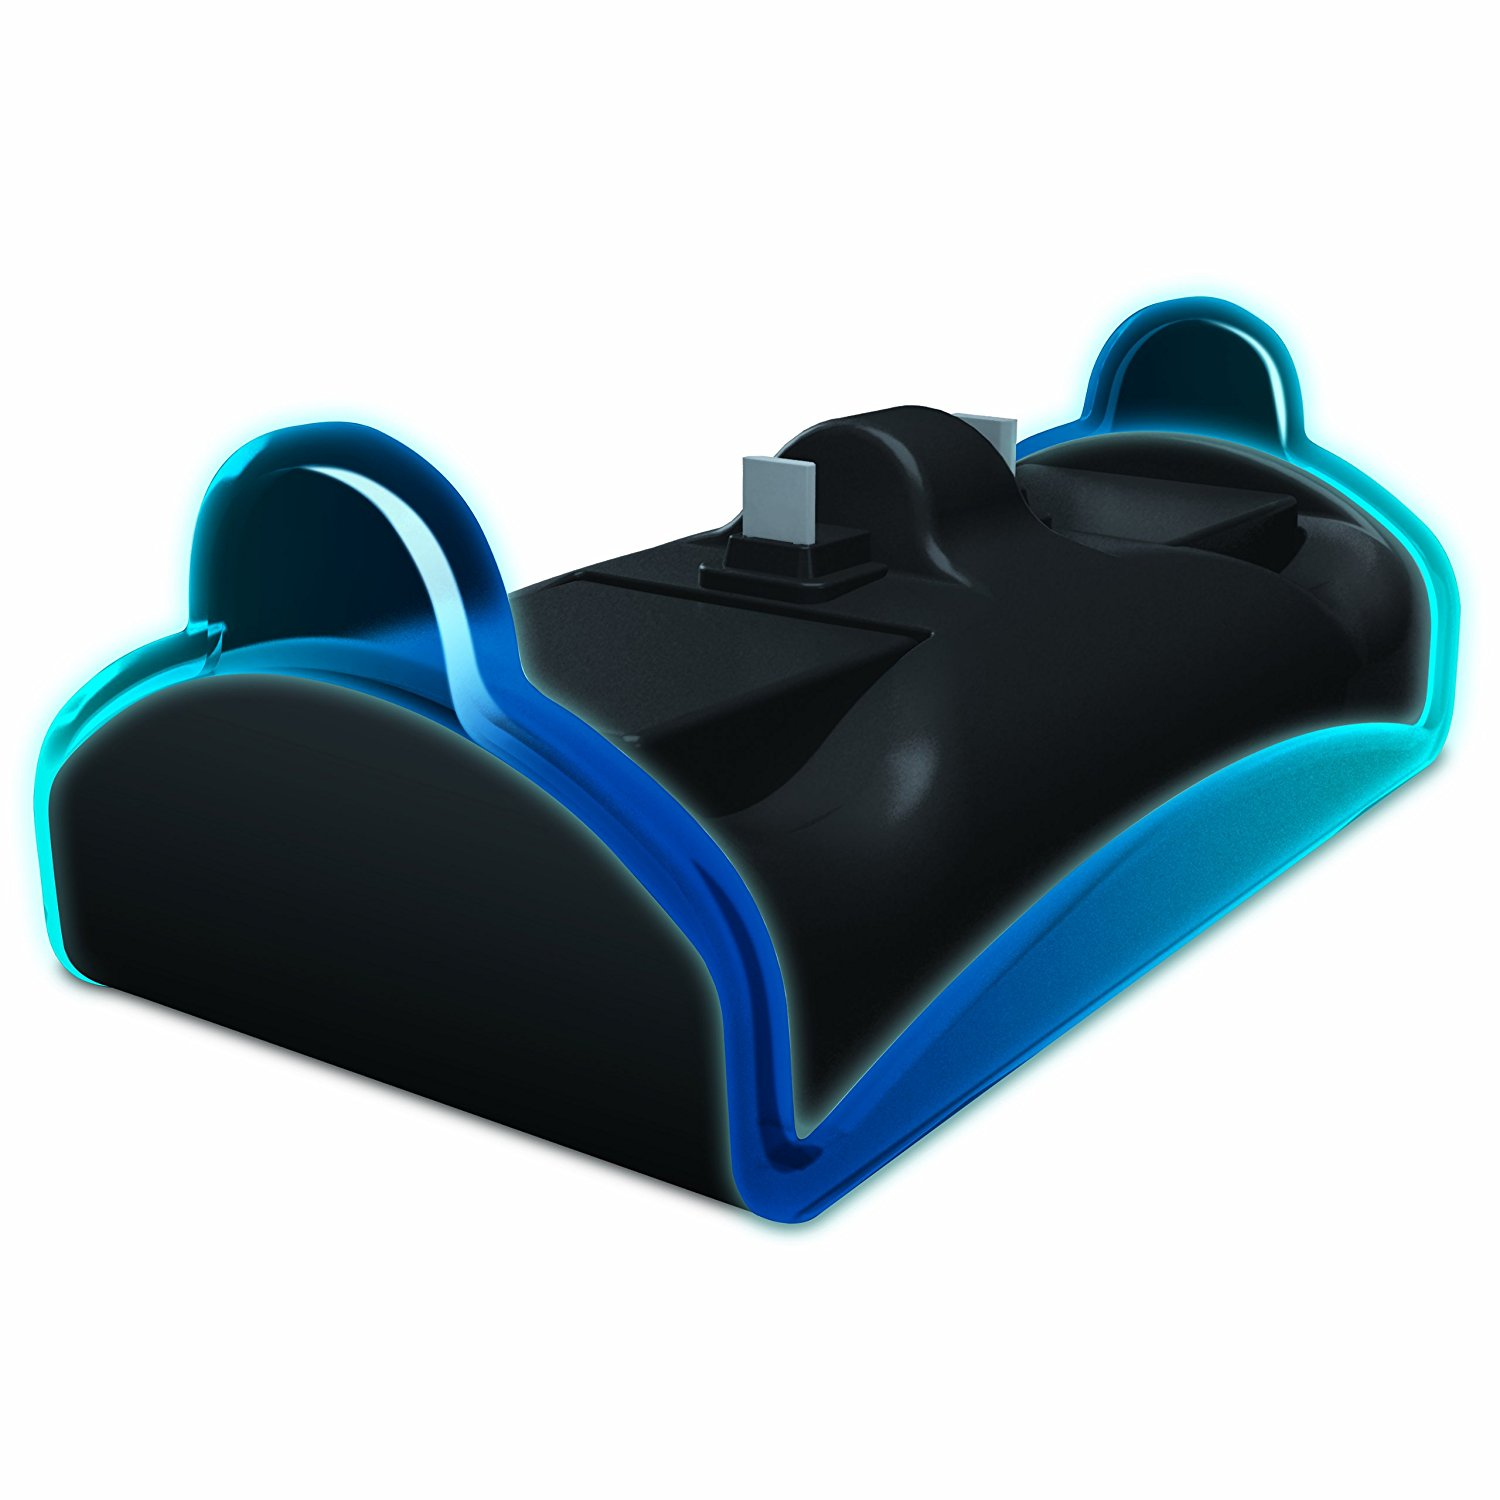 Playstation 4 Dual Charge Dock